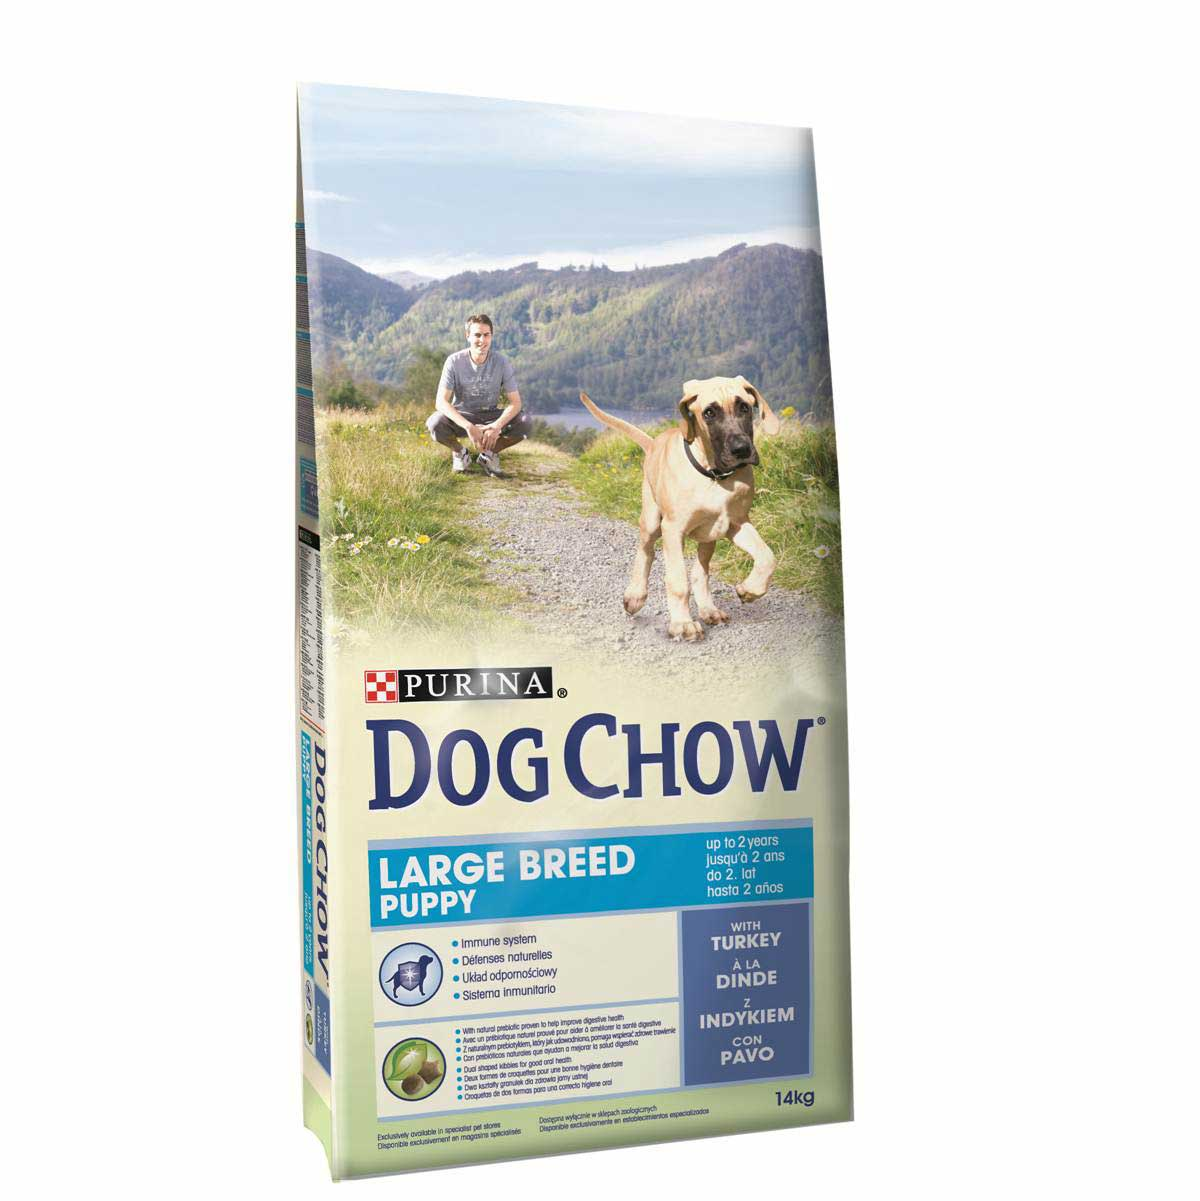 Dog Chow Puppy Large Breed Perú 14 Kg